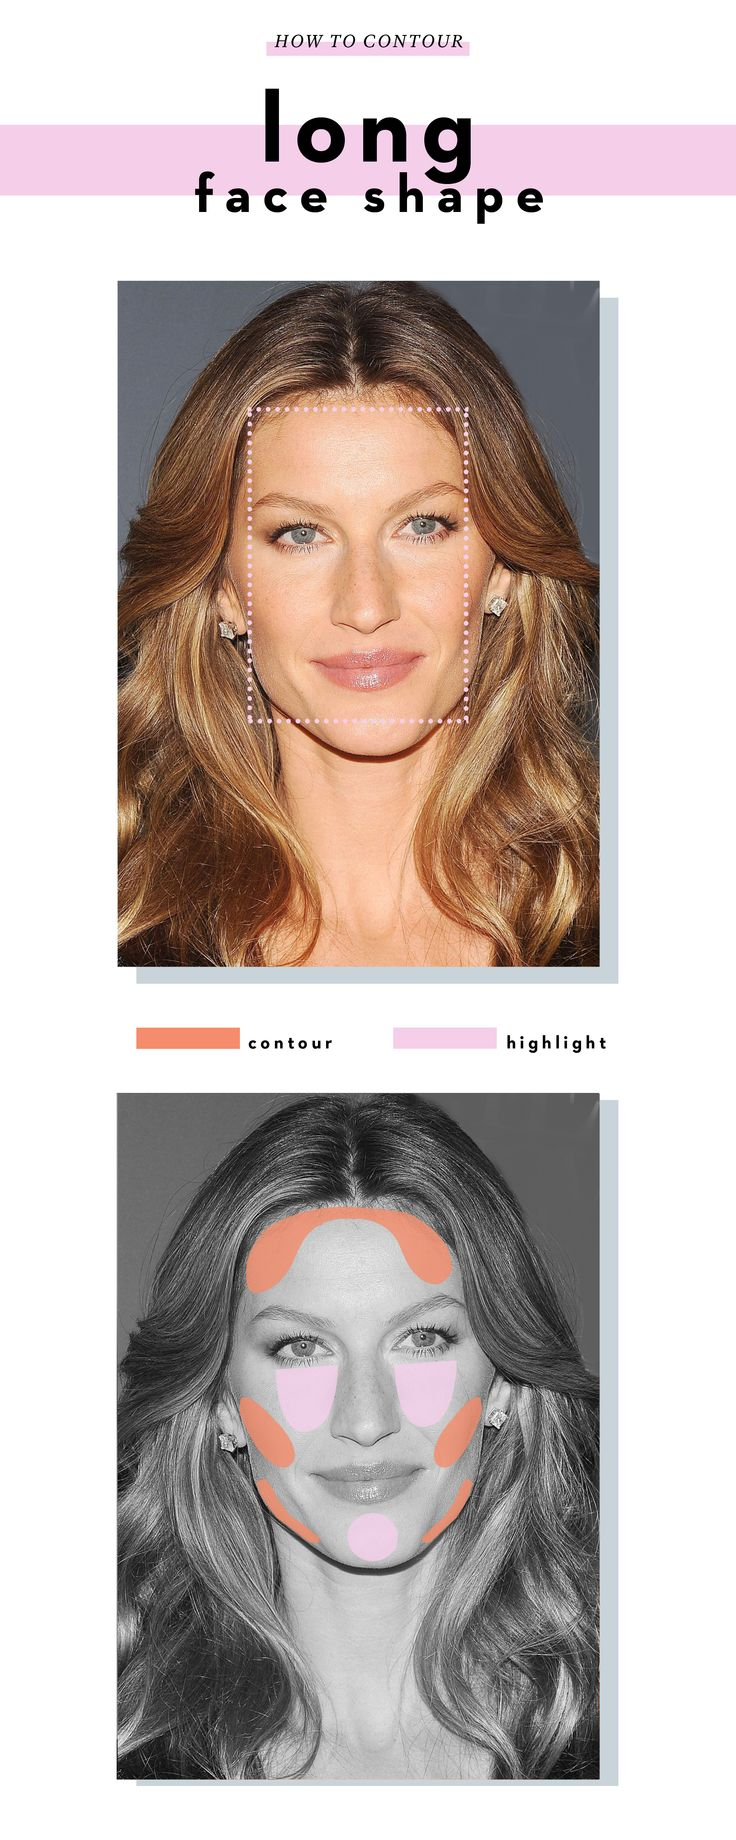 How to contour like a professional makeup artist long